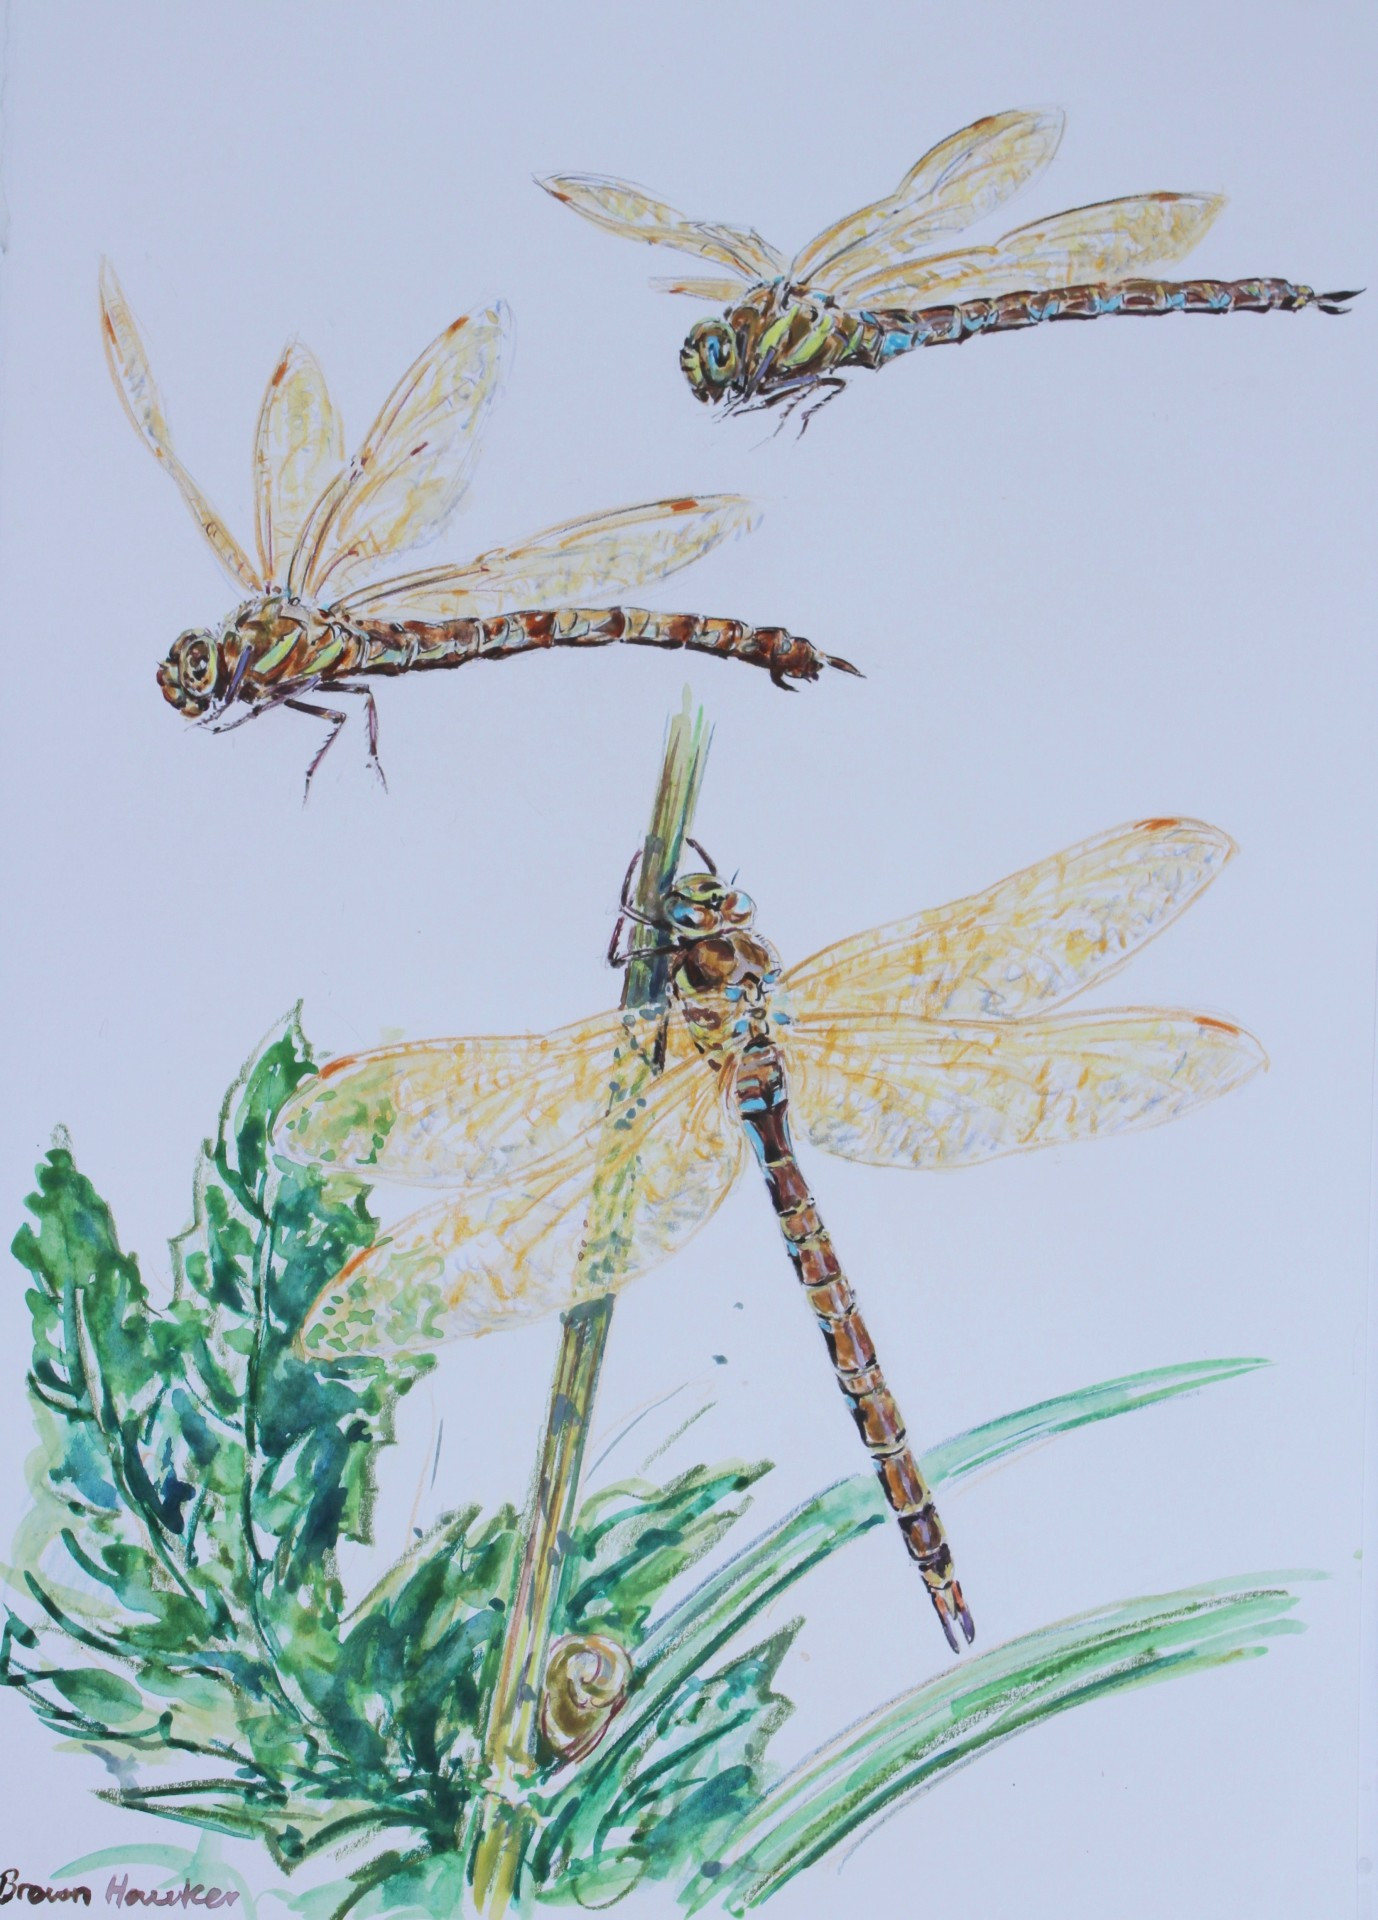 Brown Hawker Dragonfly Studies